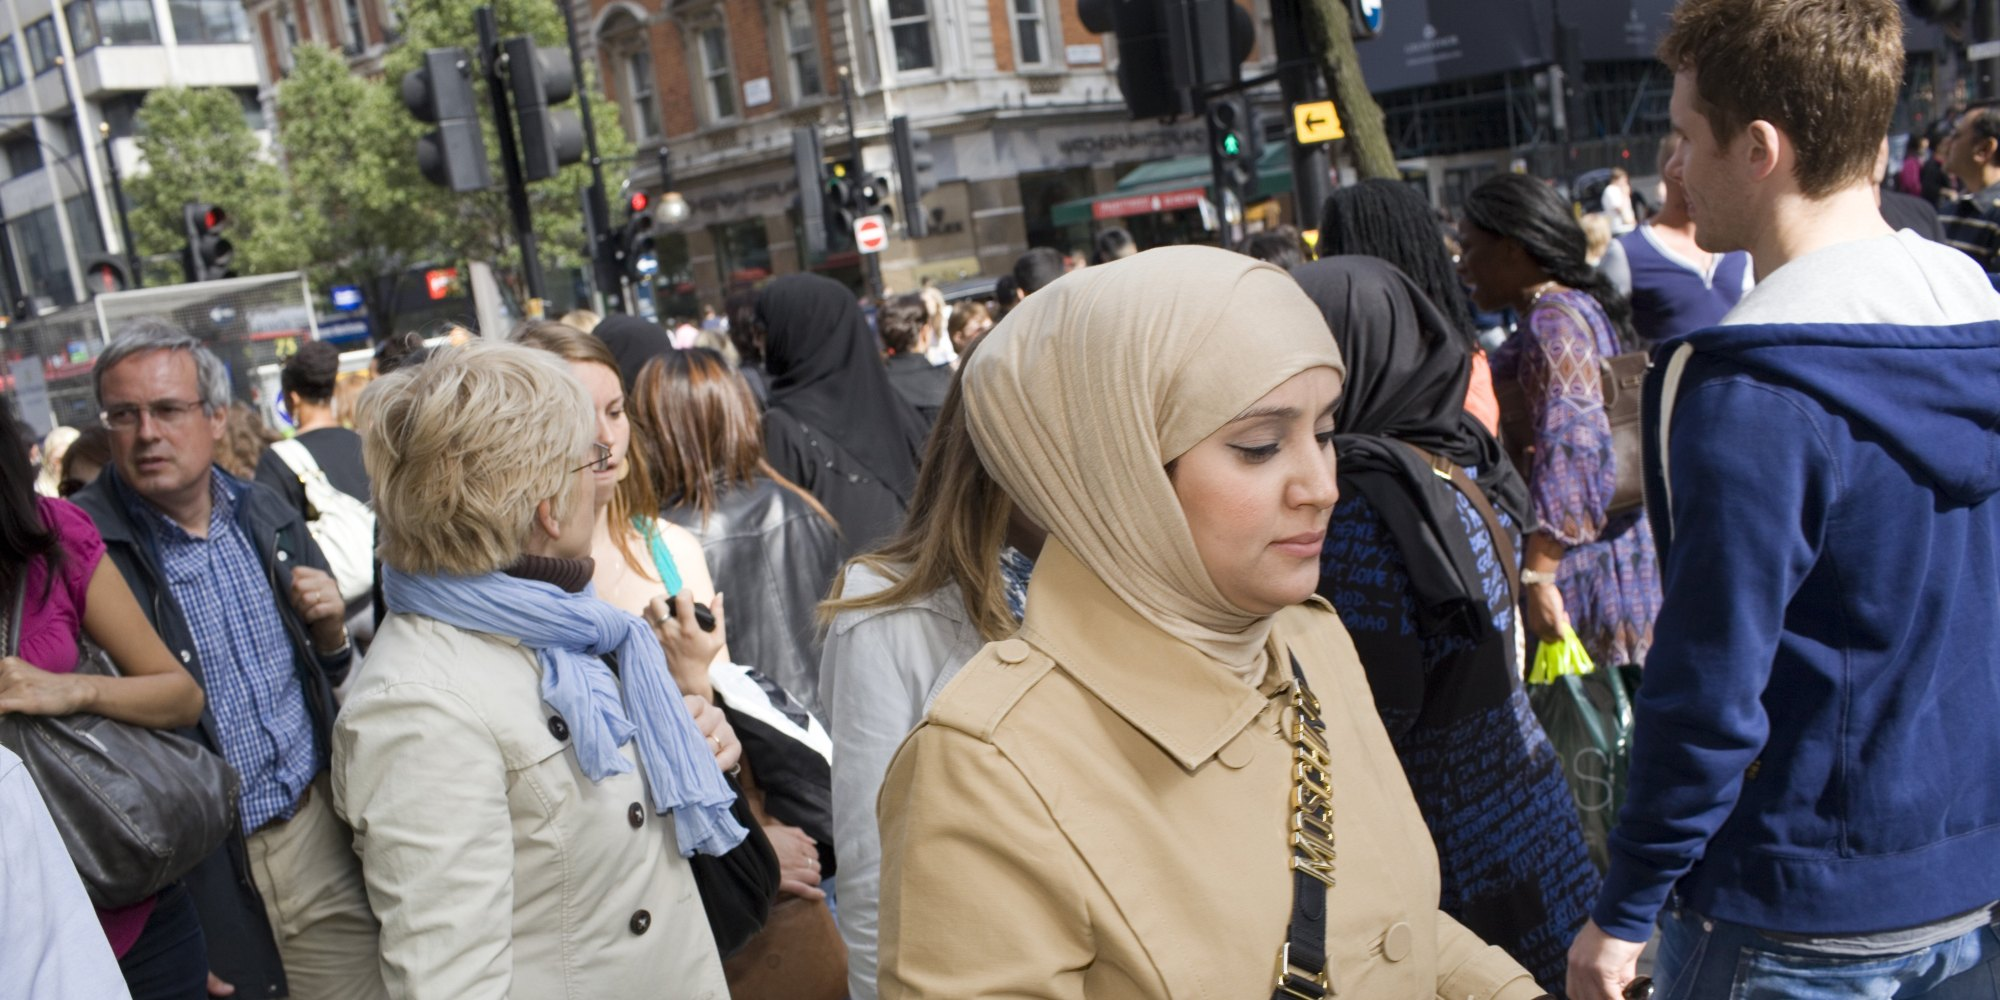 Muslims in the UK